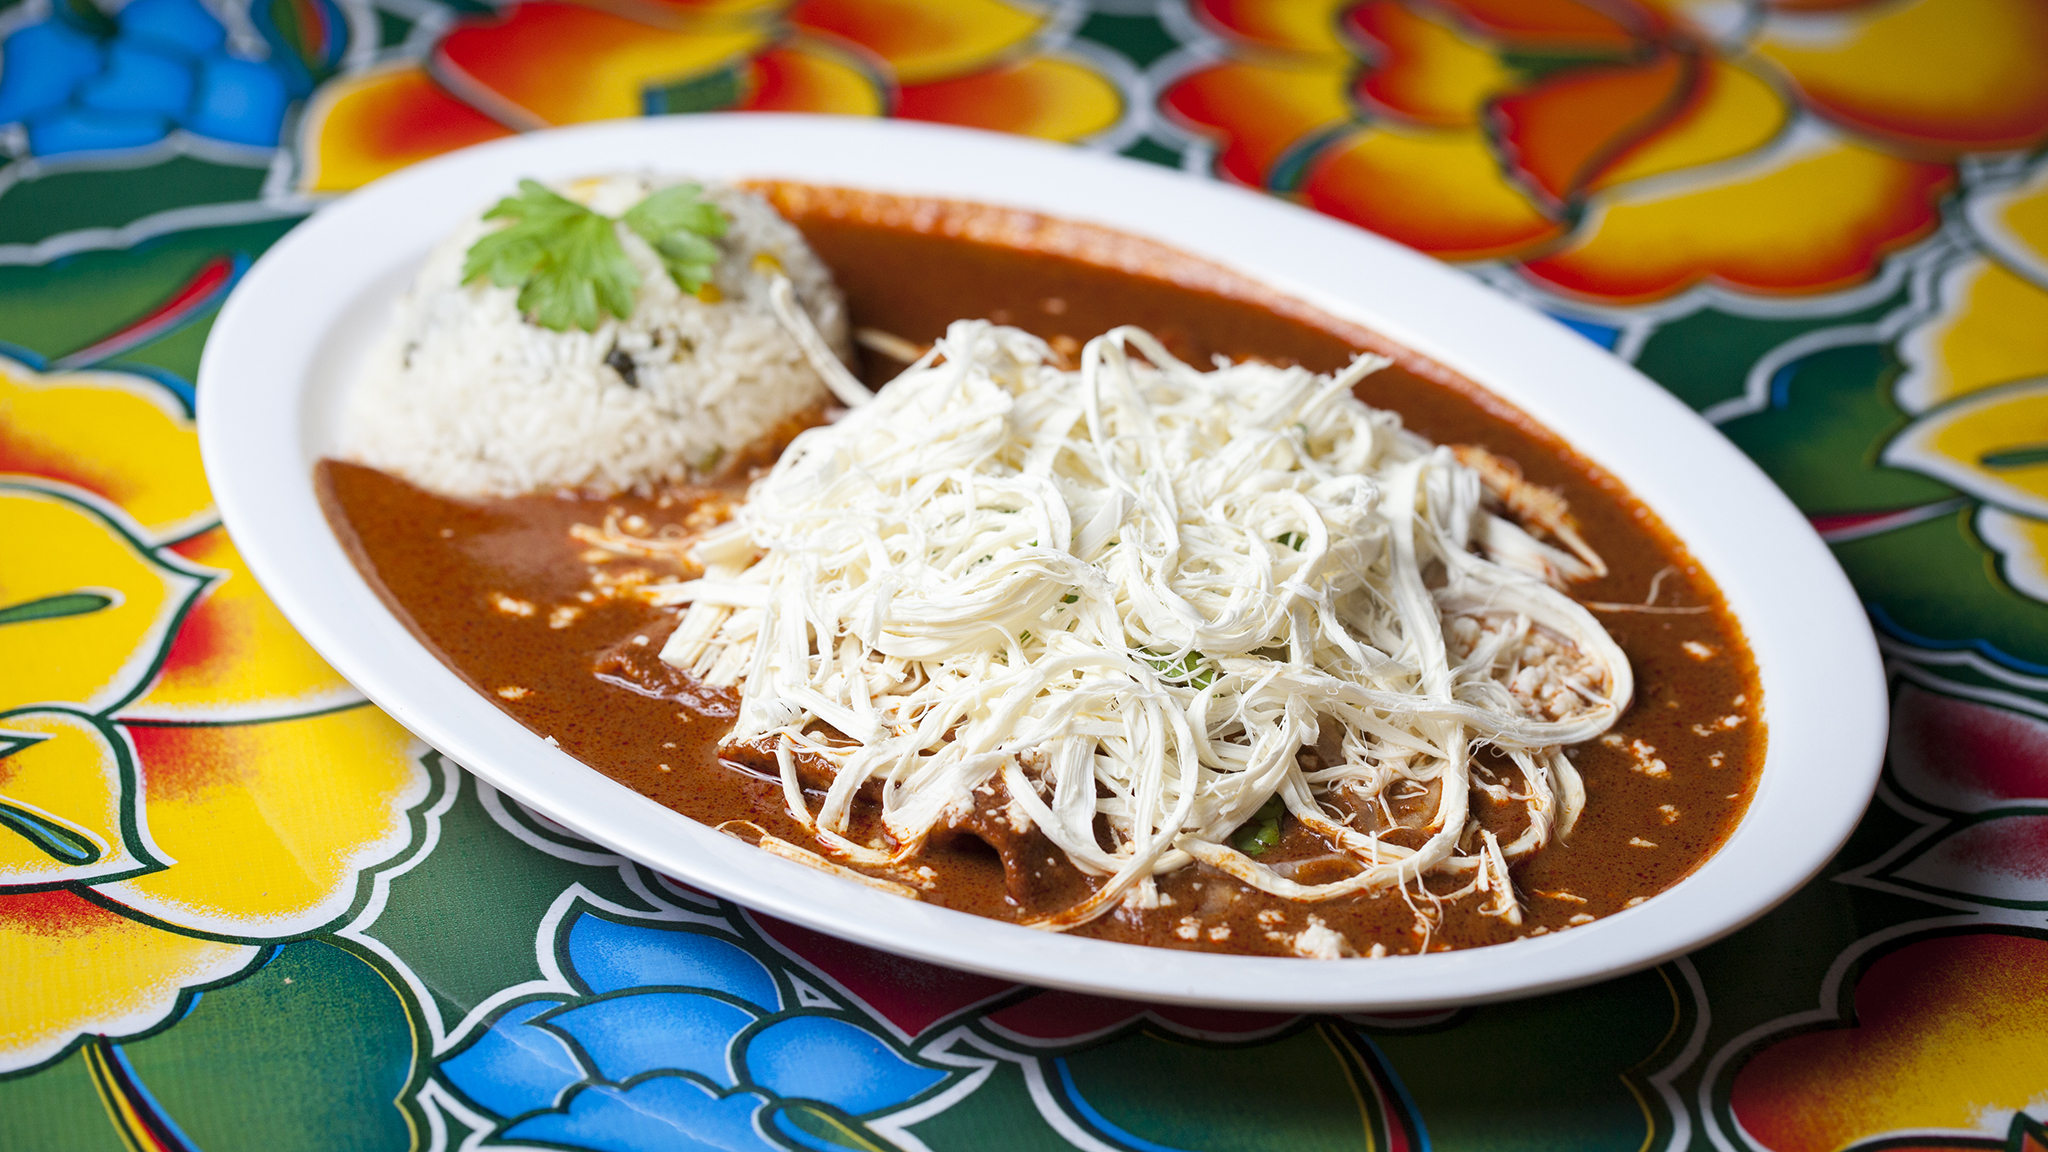 Enchiladas de Coloradito at Guelaguetza